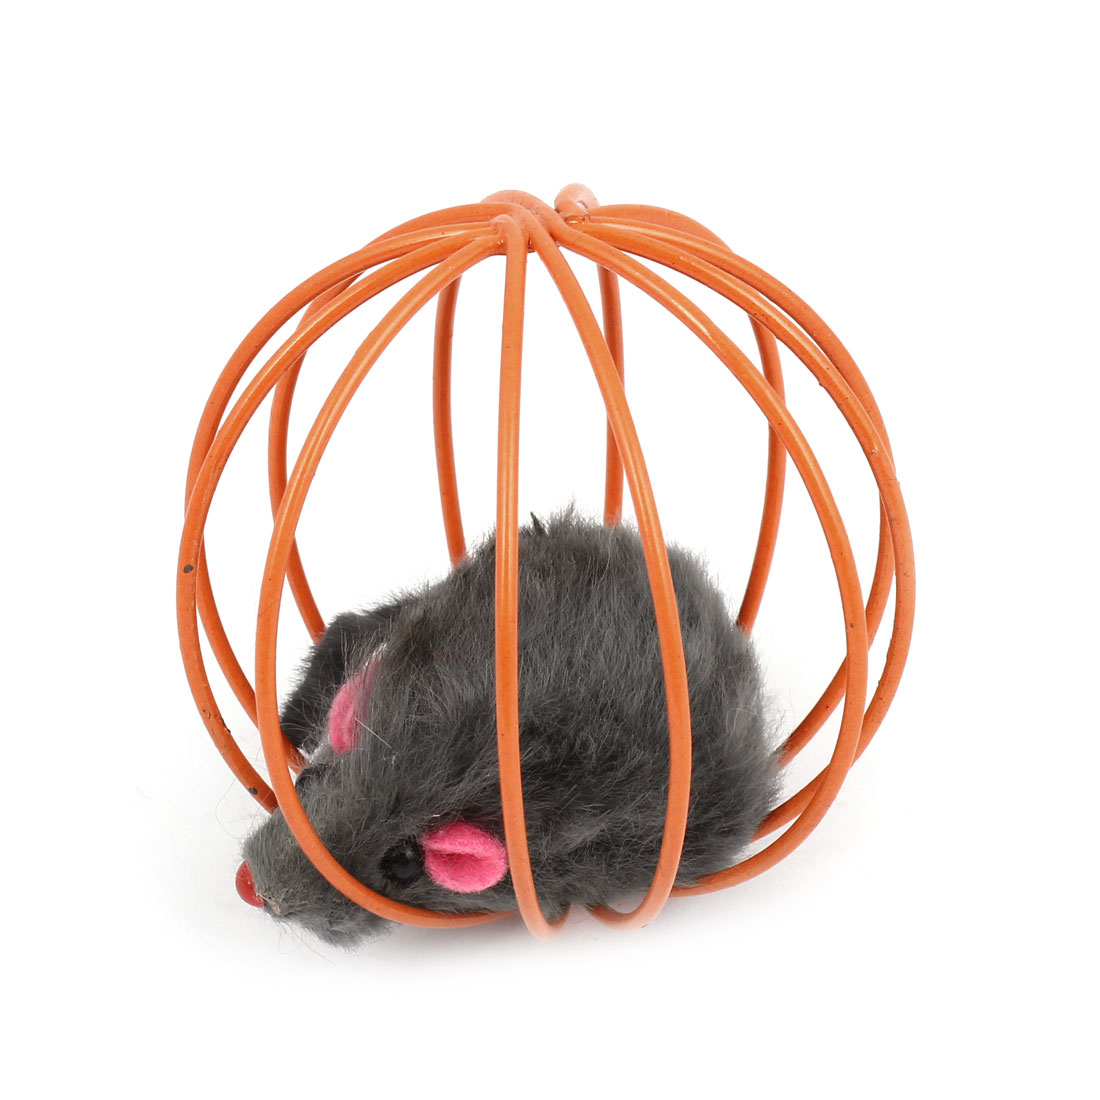 Dark Gray False Mouse Rat In Orange Metal Ball Shape Cage Pet Toy for Dog Cat Playing